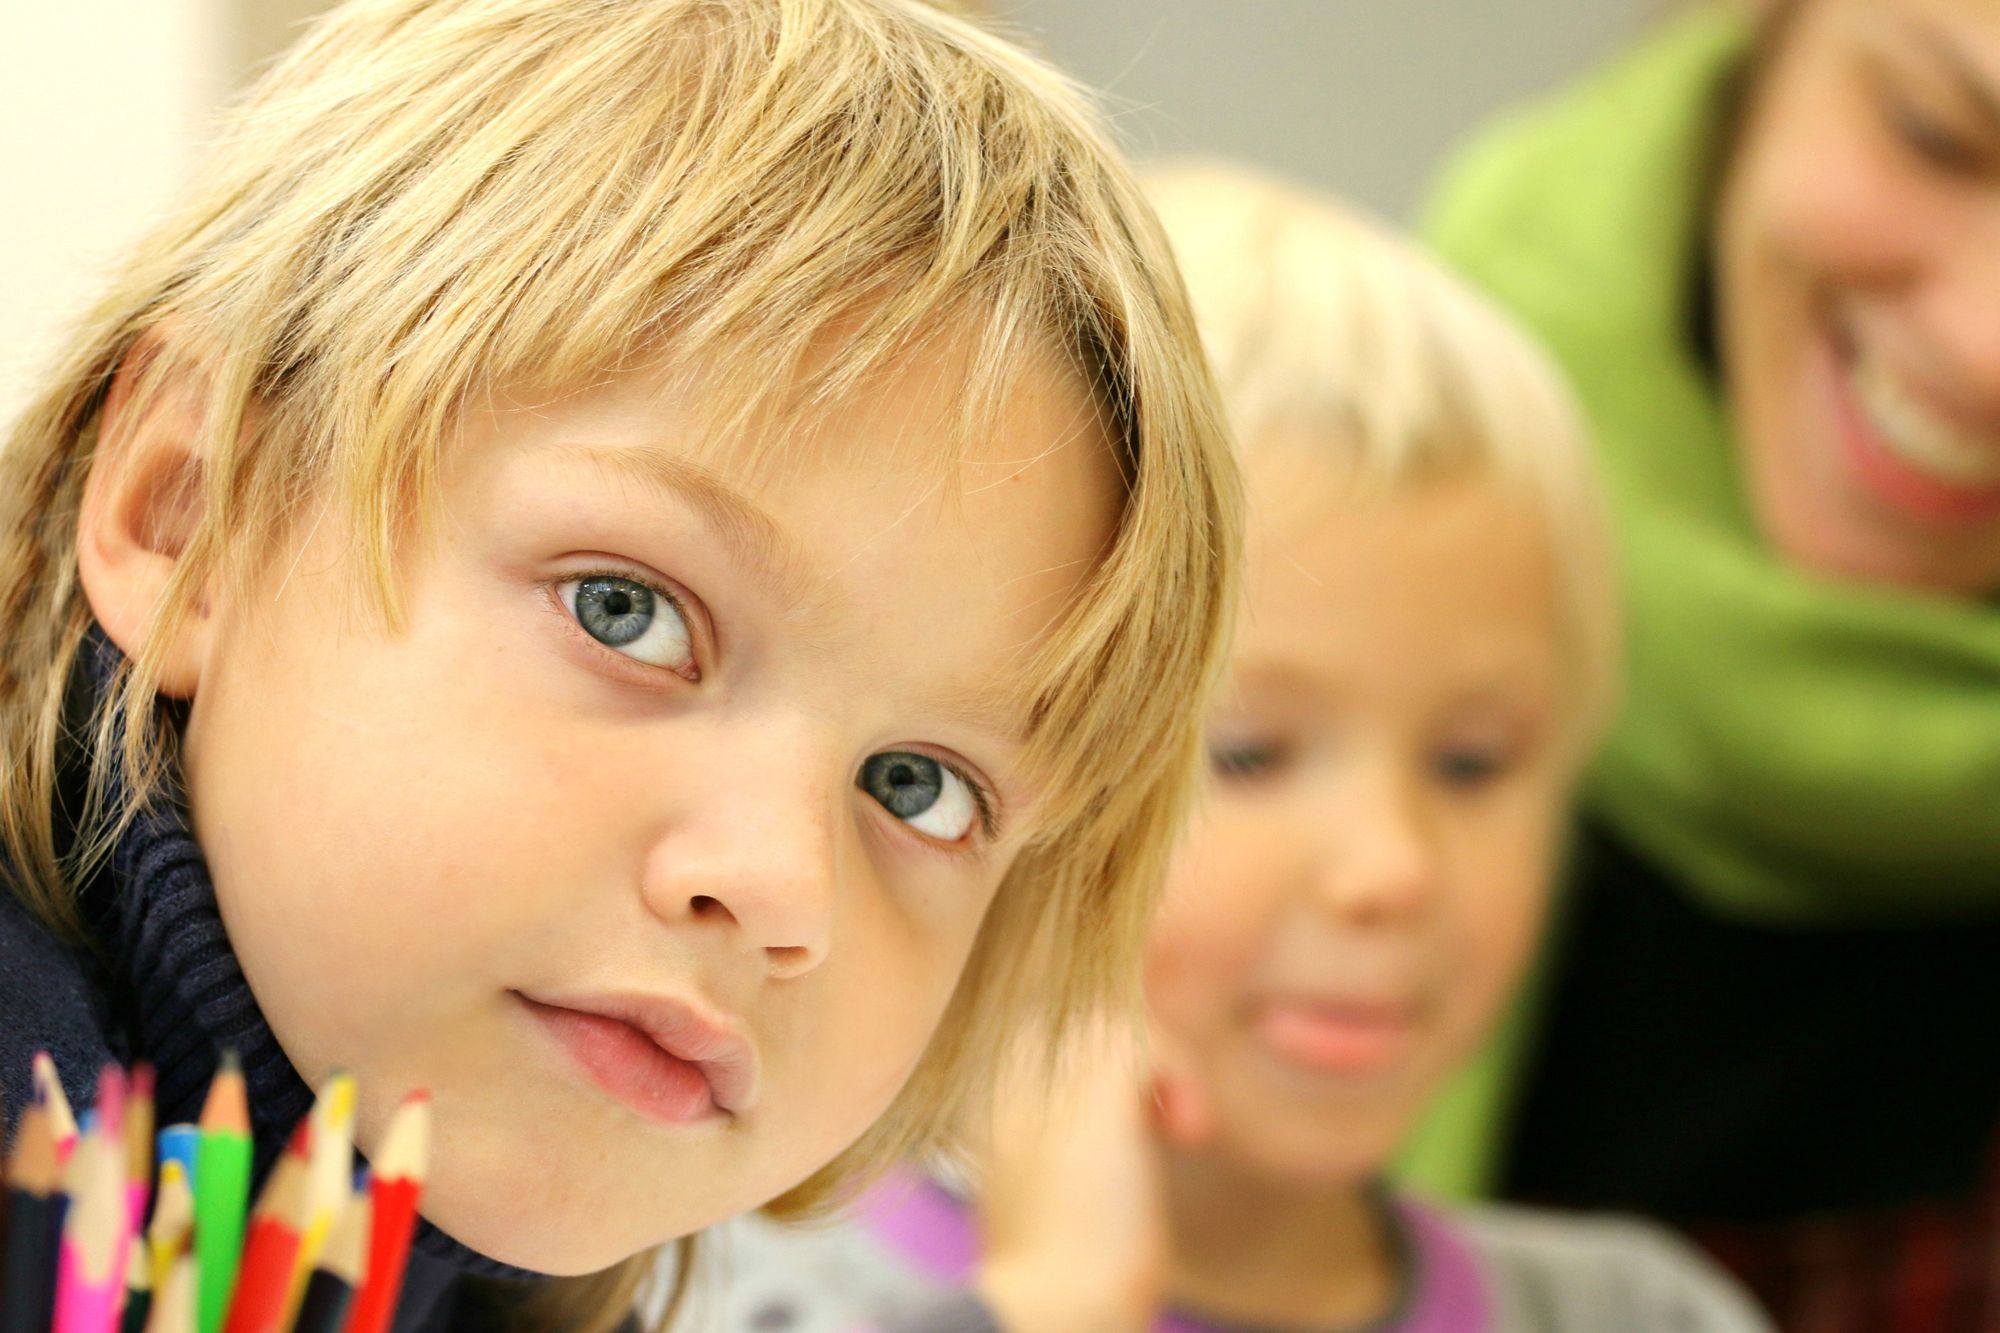 Caucasian boy in school setting near coloring pencils and another child.